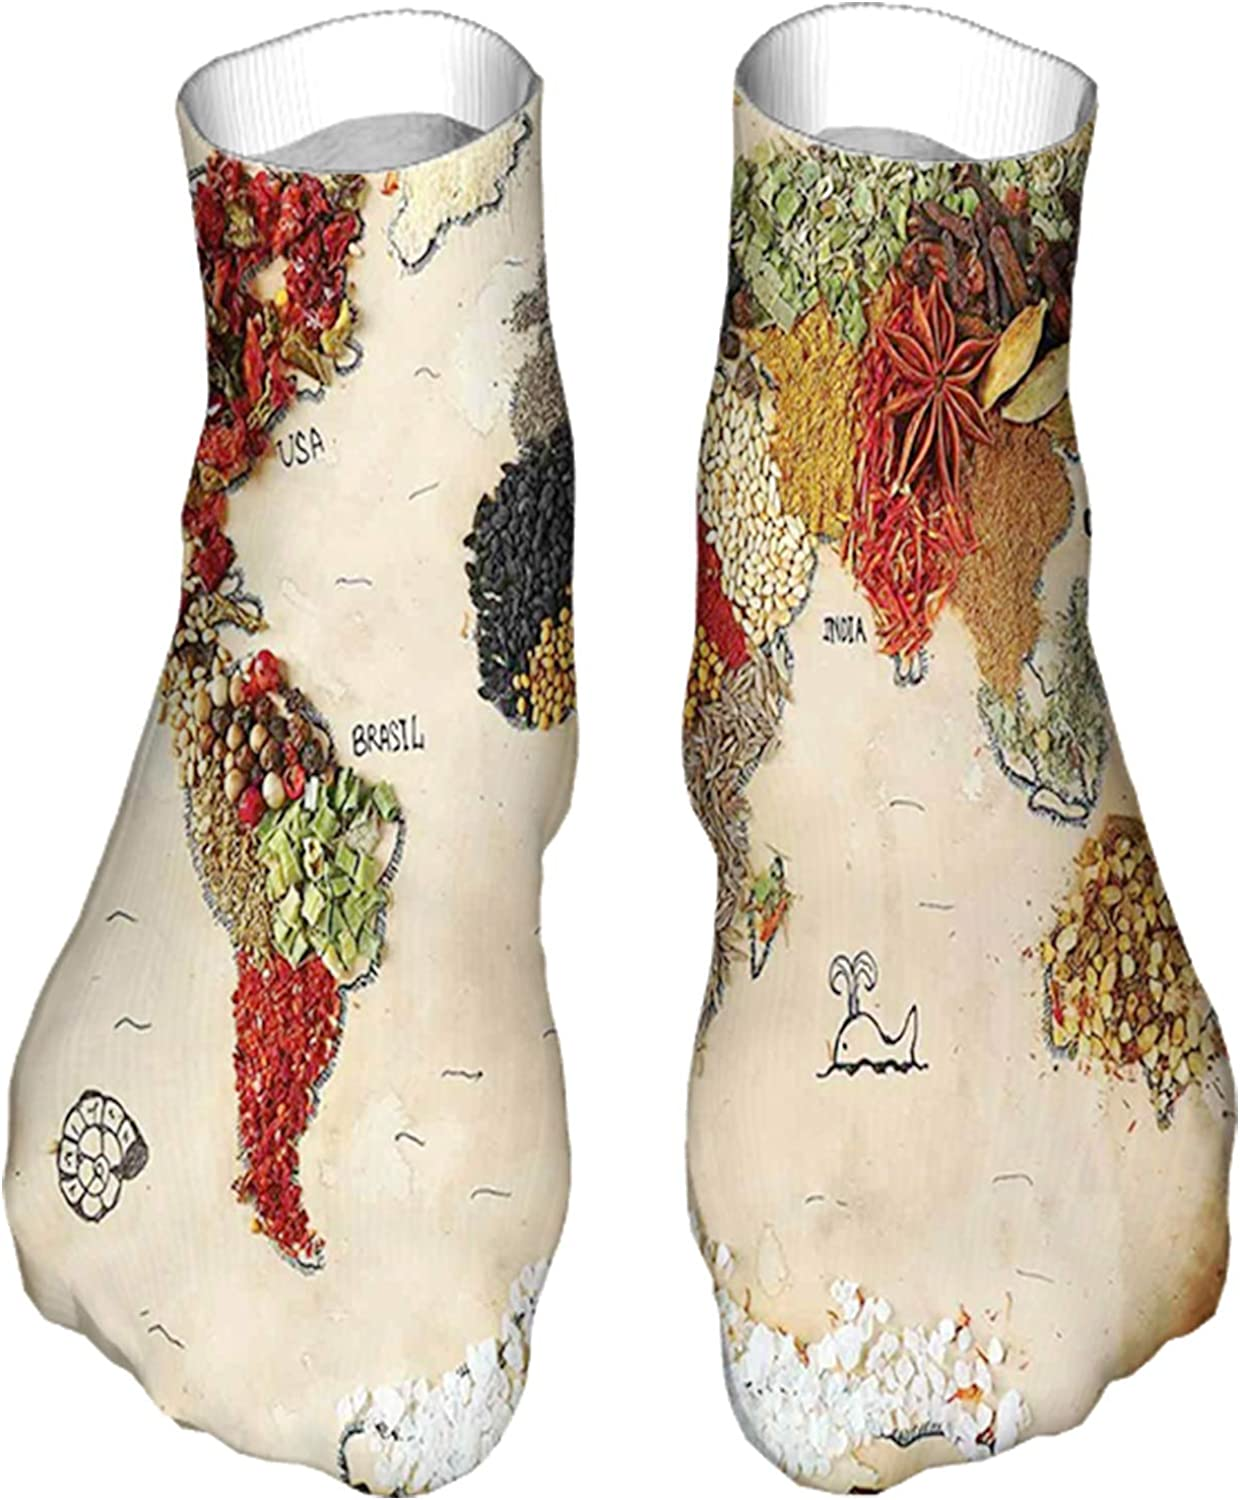 Men's and Women's Fun Socks Printed Cool Novelty Funny Socks,Map of World Different Spices Design with Food Symbols